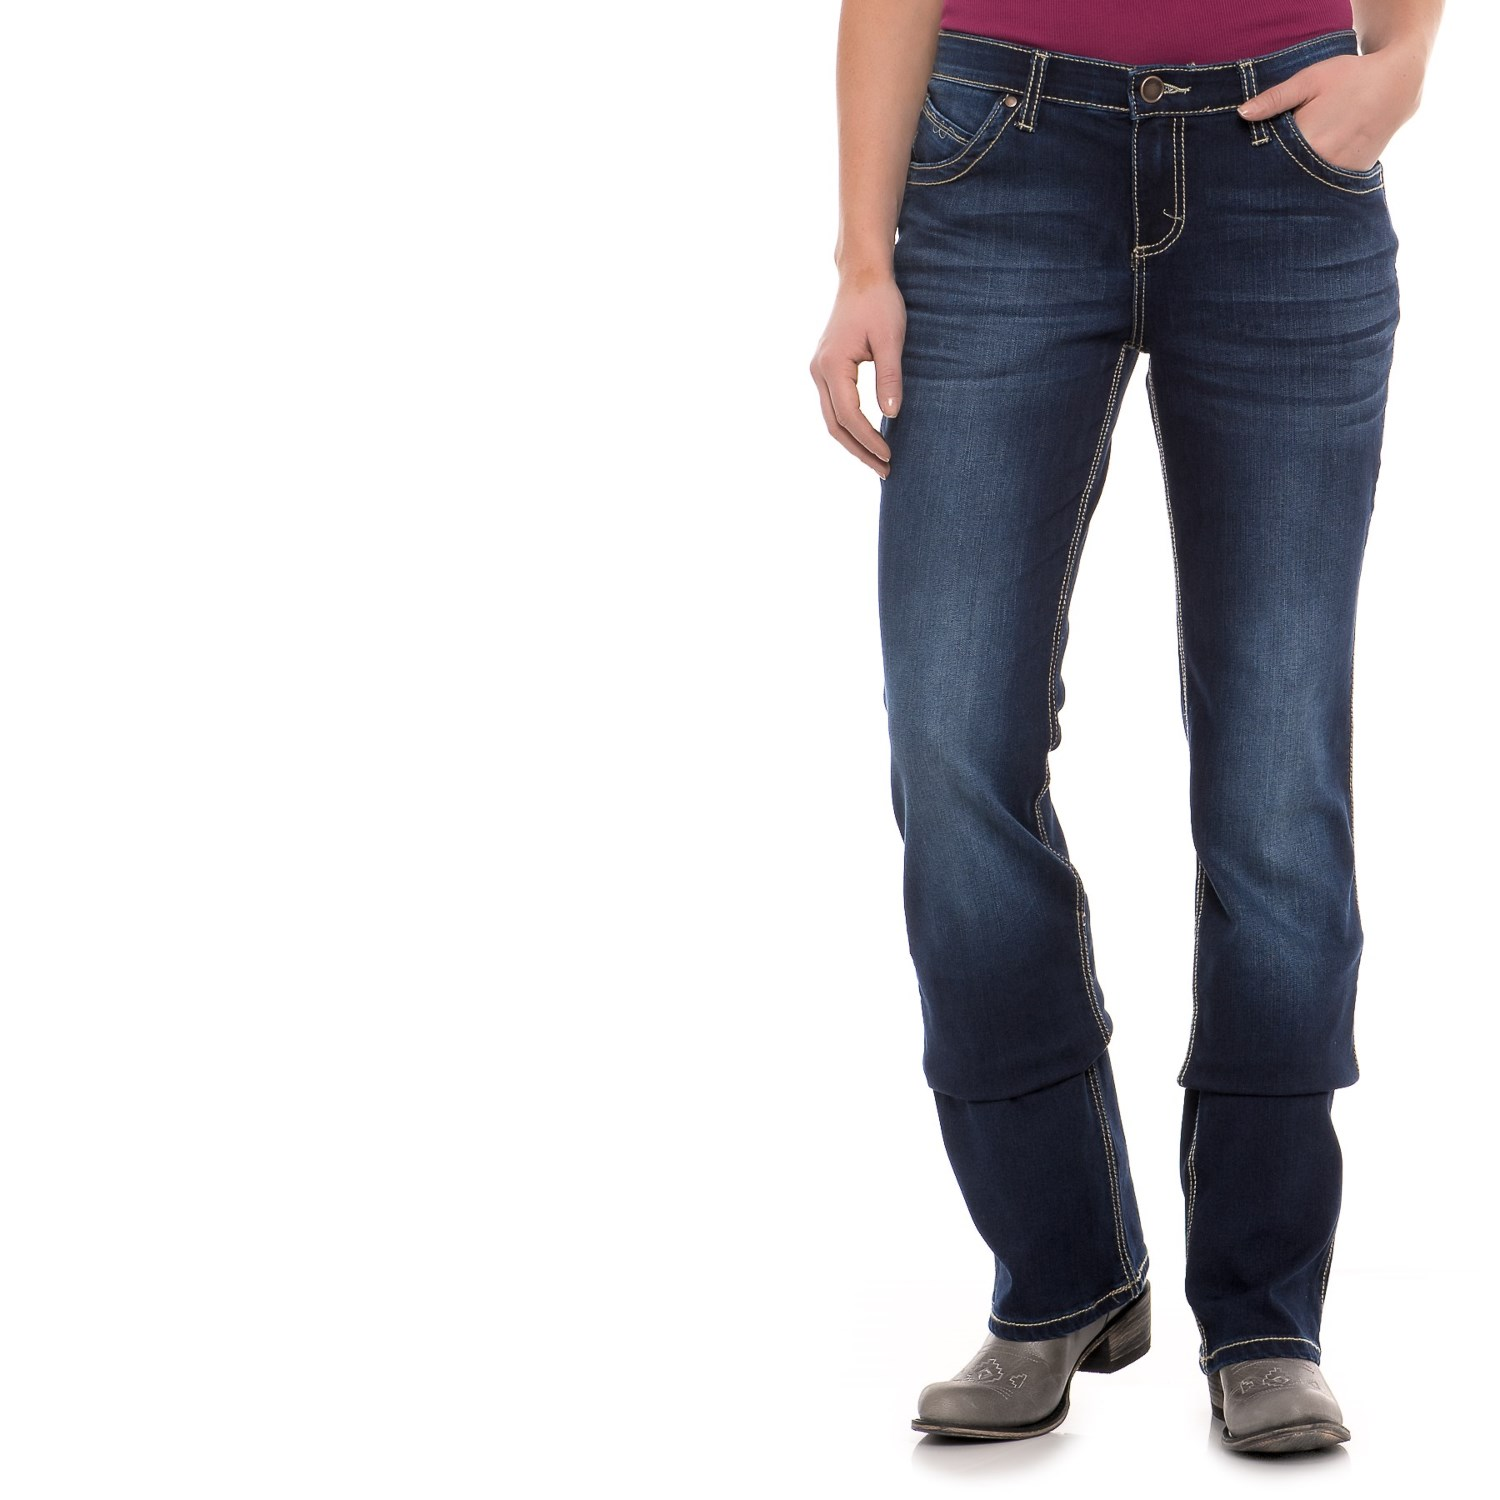 Wrangler Q Baby Ultimate Riding Jeans For Women Save 48